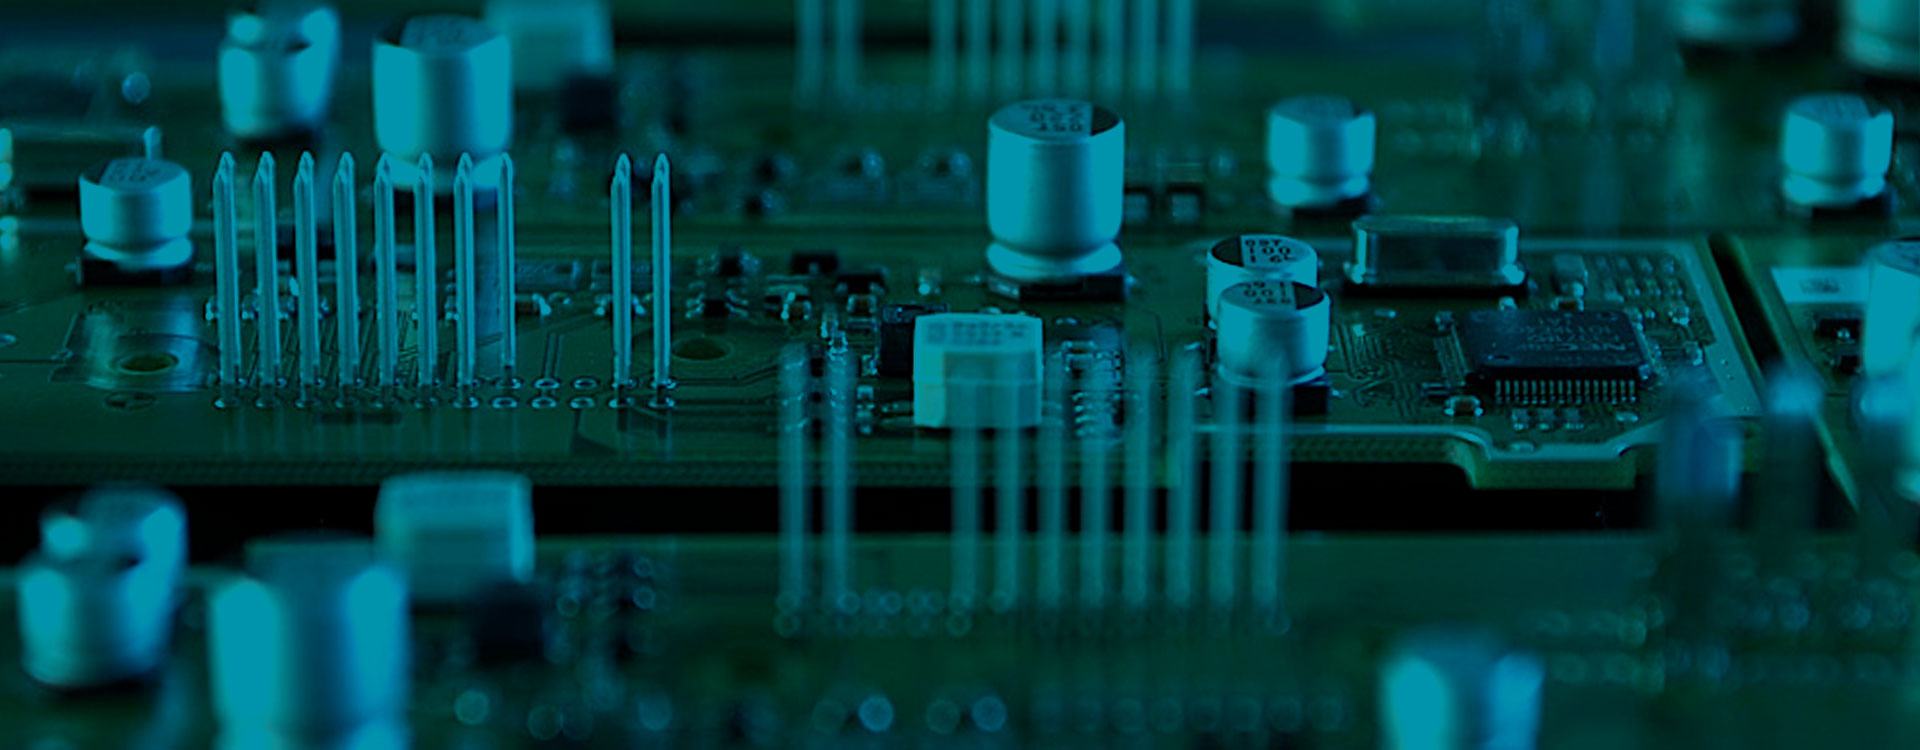 <p><strong>Build-to-print and ems (electronics manufacturing services) for the electronics industry</strong></p> <h2>CONTRACT MANUFACTURING:<br /> YOU DEVELOP, WE PRODUCE</h2> <p>Electronics Manufacturing Services (EMS) is a rapidly growing segment in the electronics industry. Helbako is an excellent order producer and strategic partner in the domain of sophisticated electronics. Rigorously involved in quality management on behalf of our clients, we accomplish outsourced development and manufacturing processes just like an external site.</p>